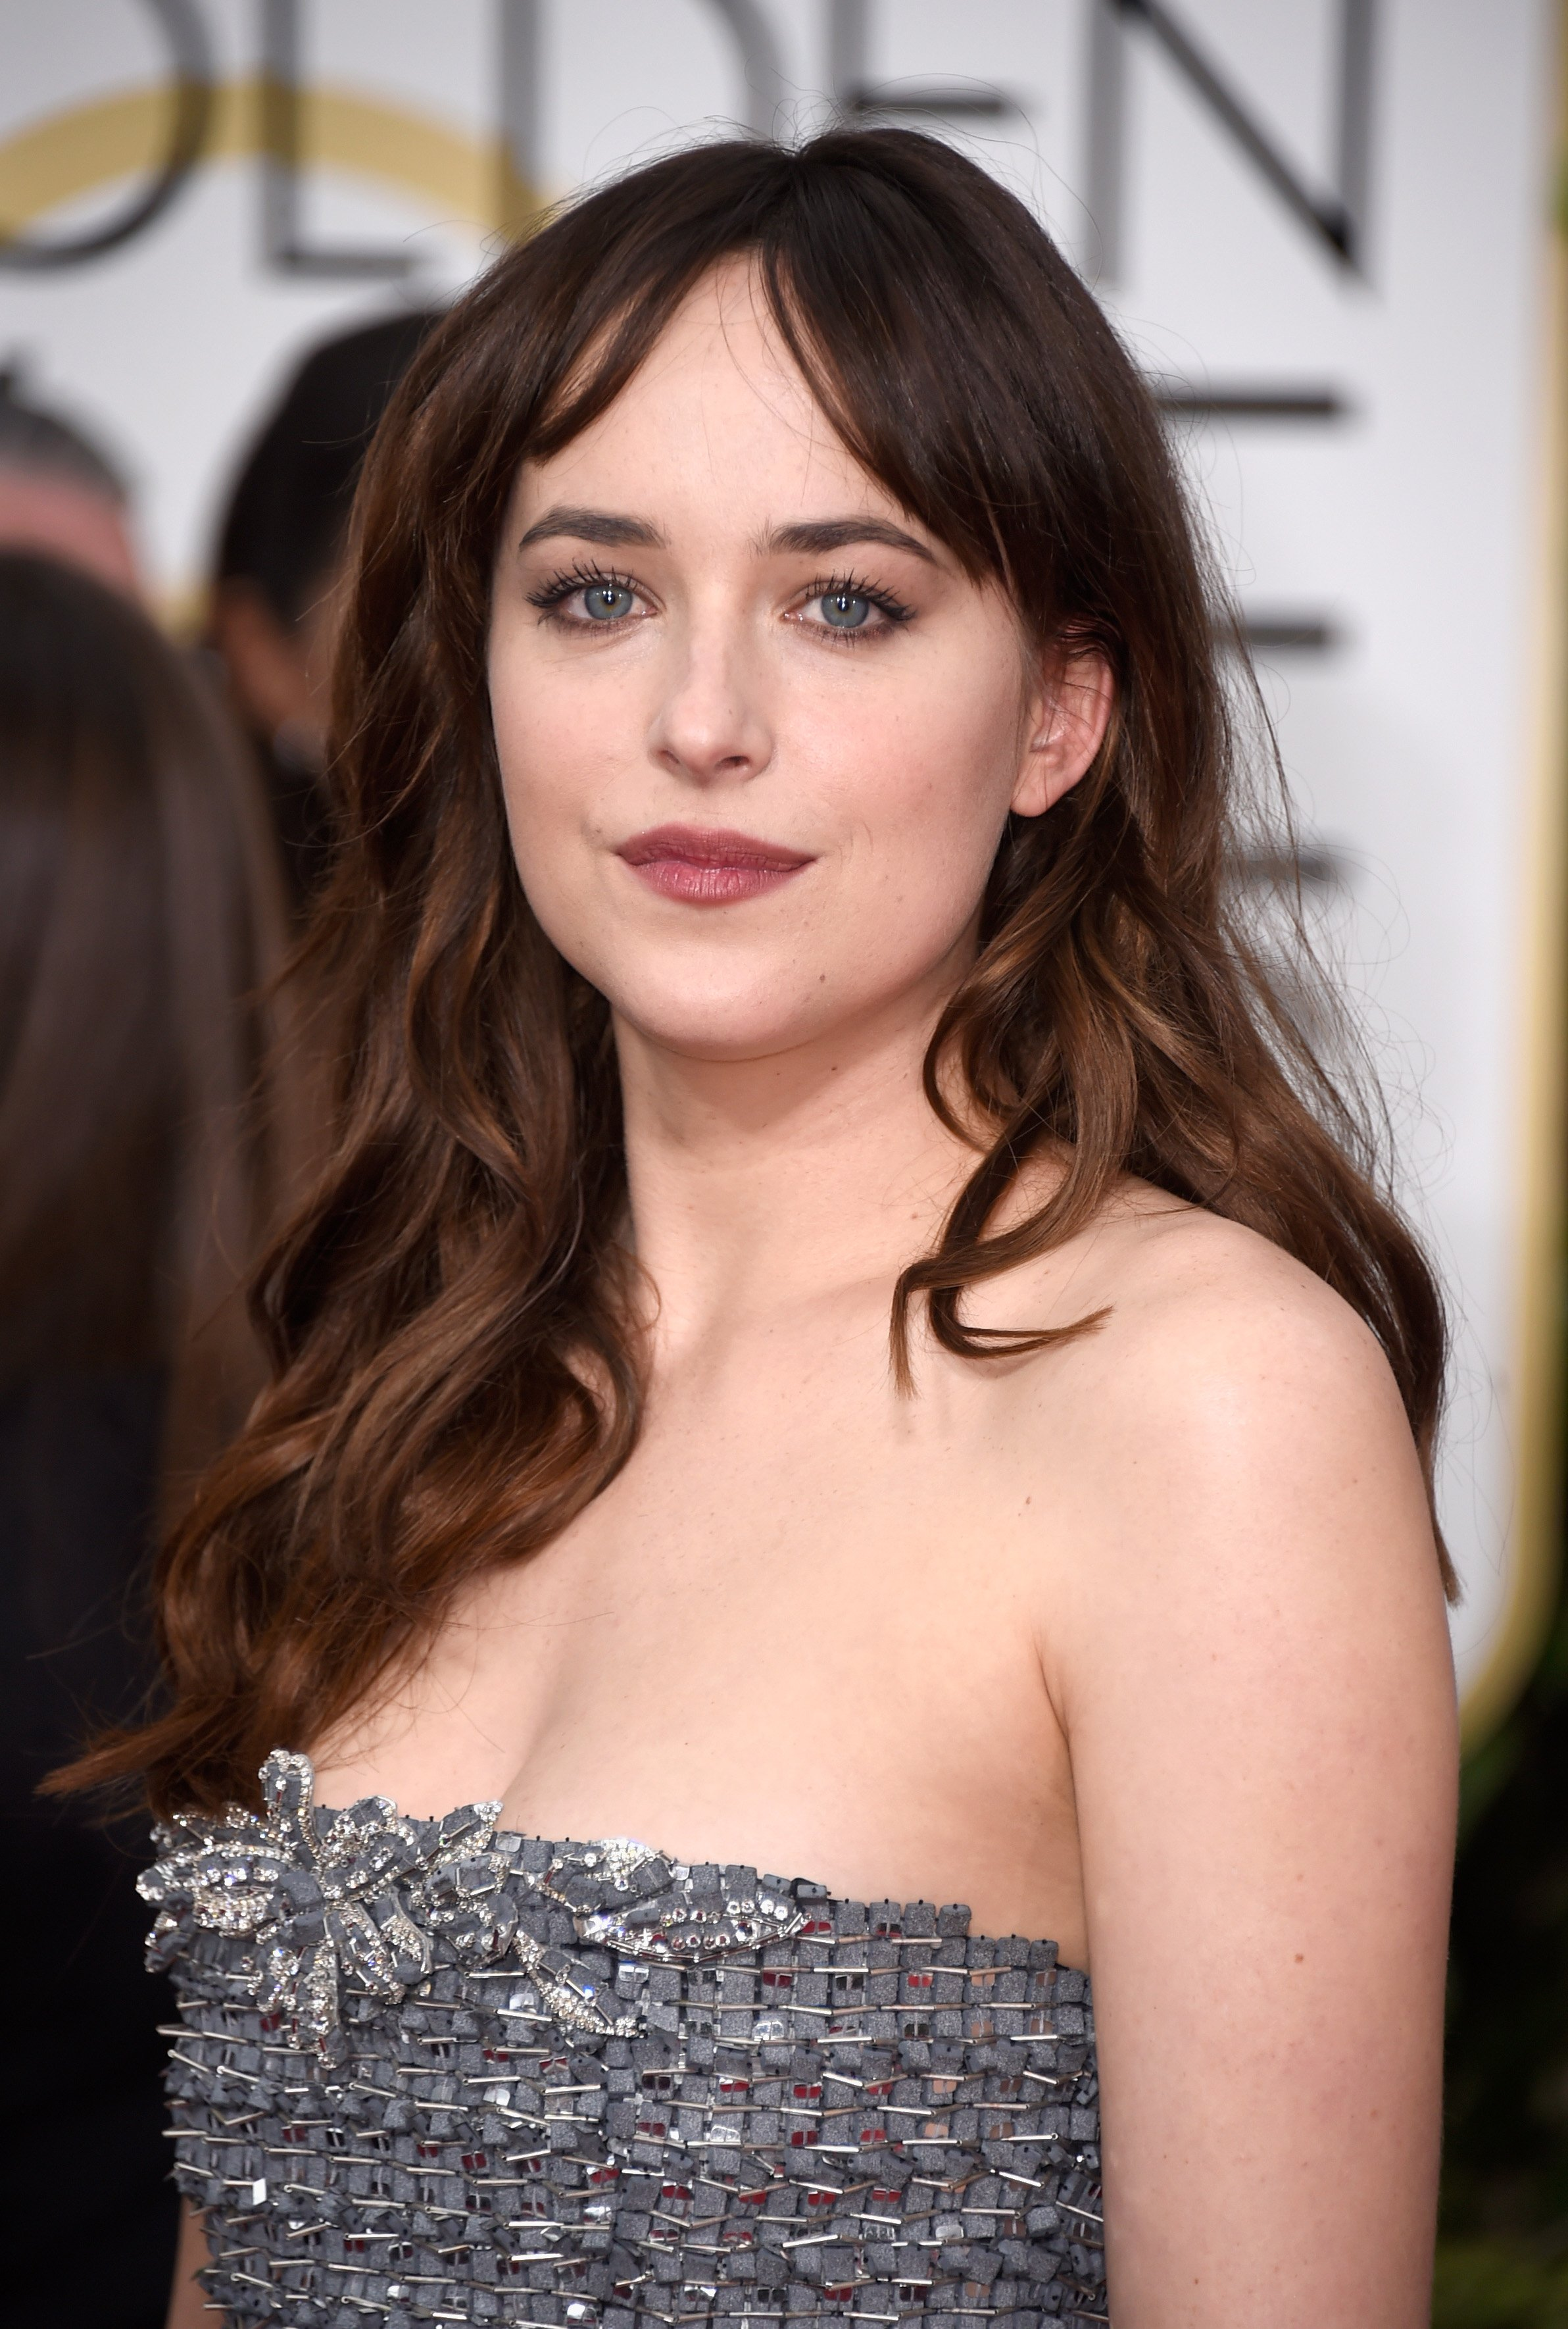 Dakota Johnson at a ceremony - Dakota Johnson Net Worth, Movies, Family, Boyfriend, Pictures and Wallpapers